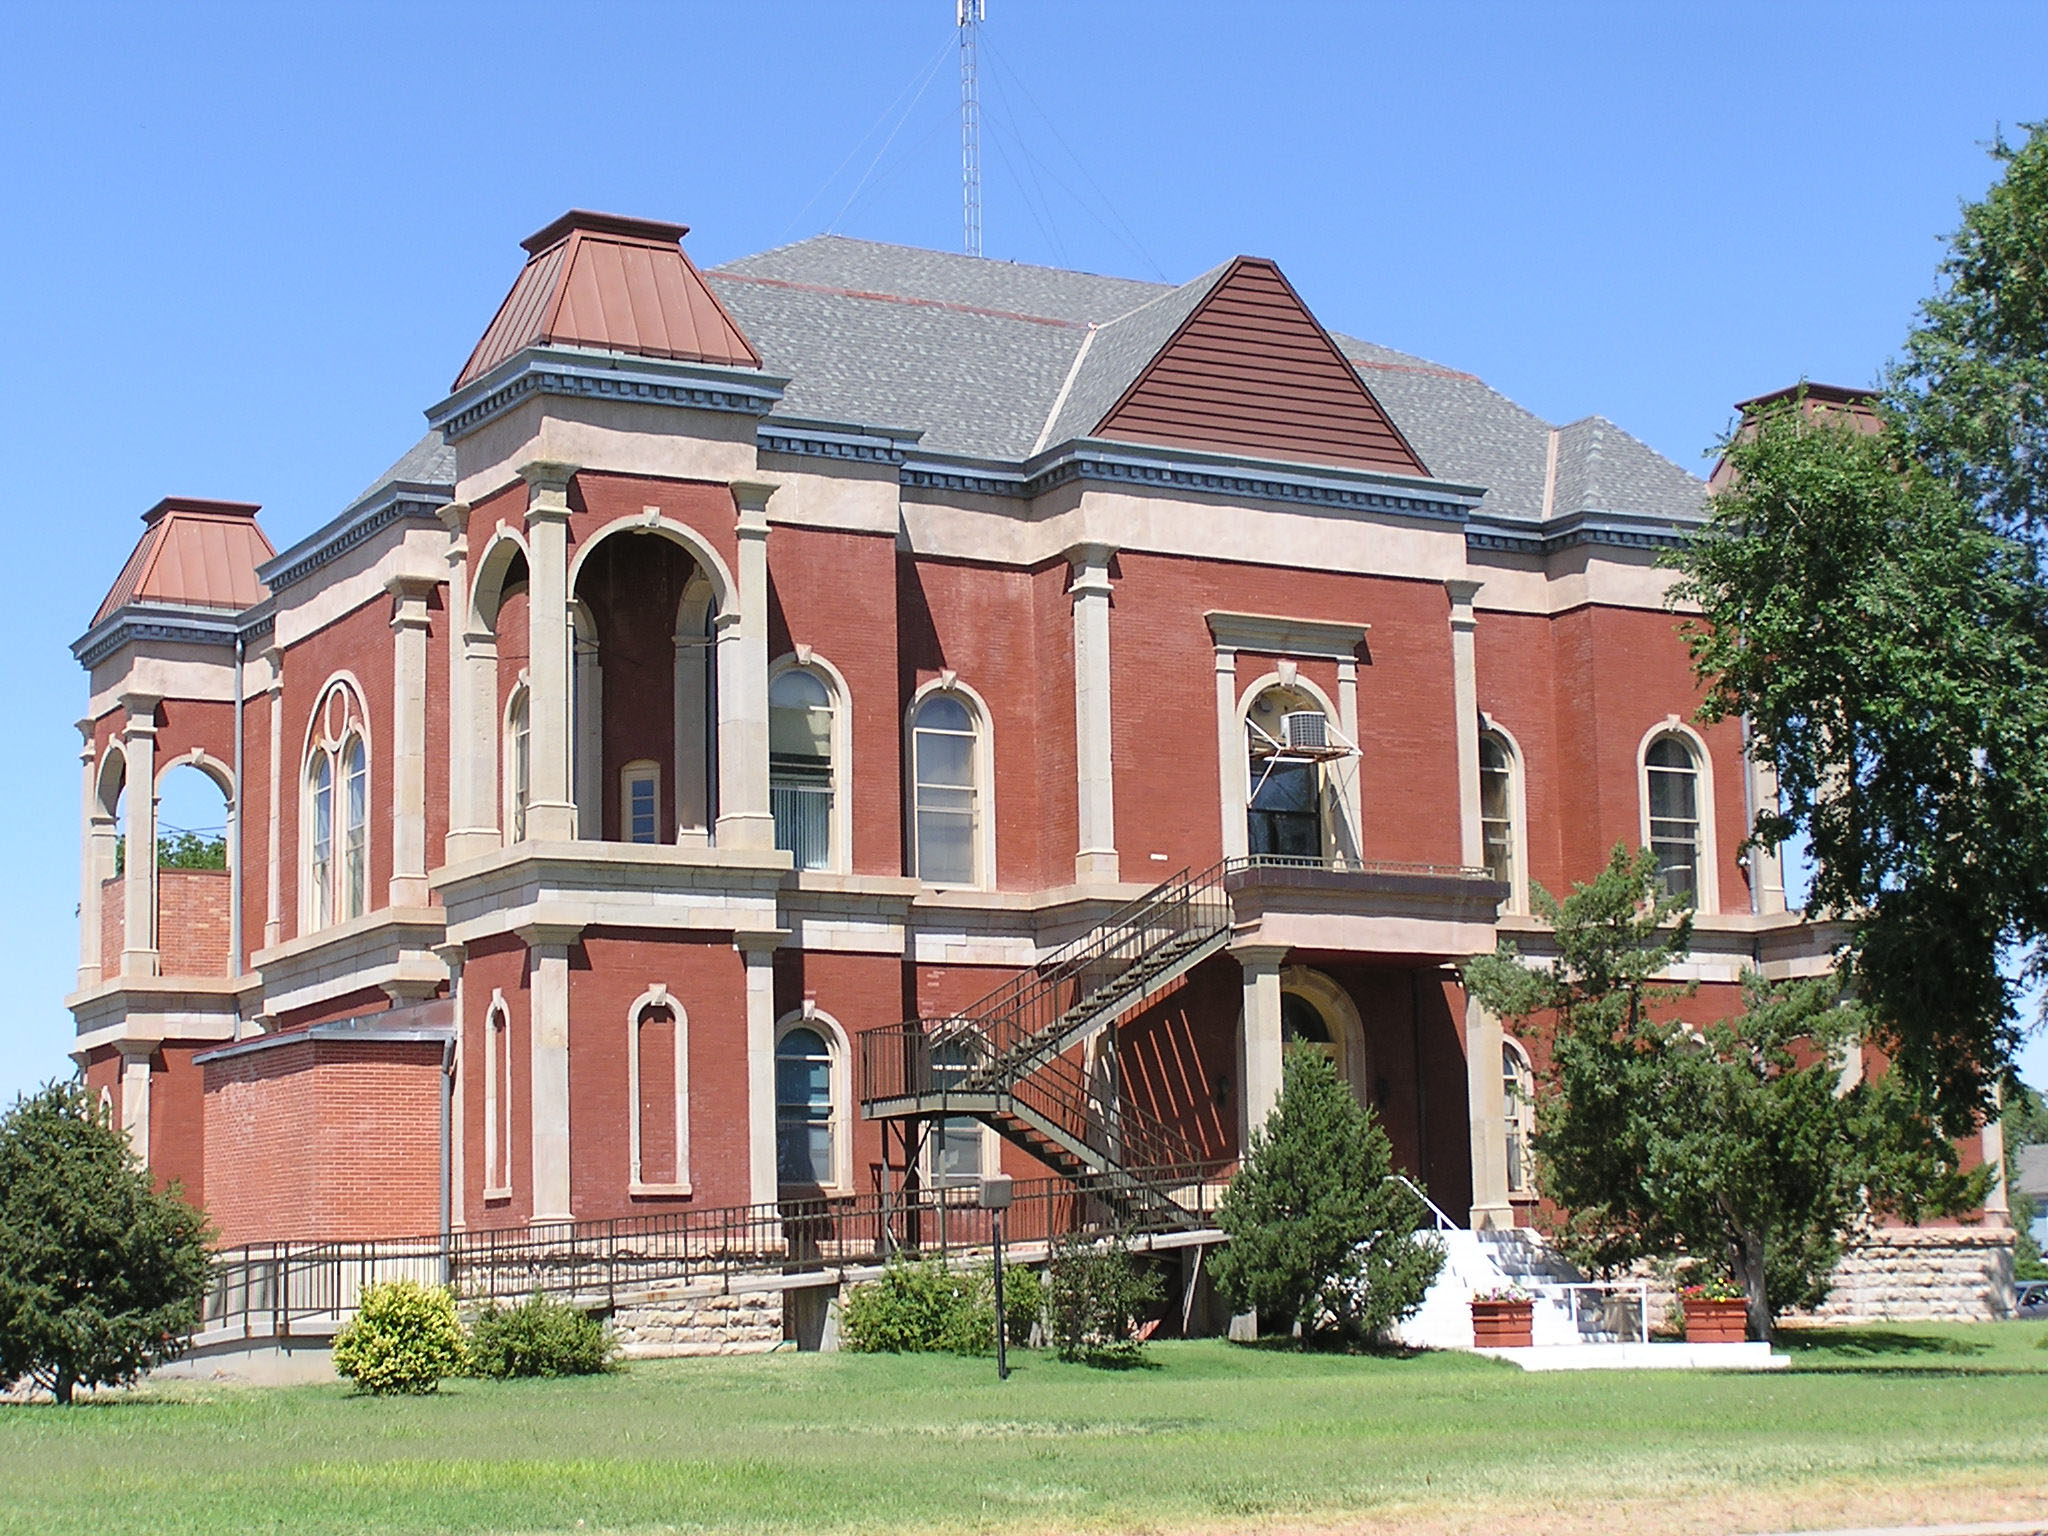 A photo of the Bent County Courthouse and Jail in Las Animas, a two story red brick building.